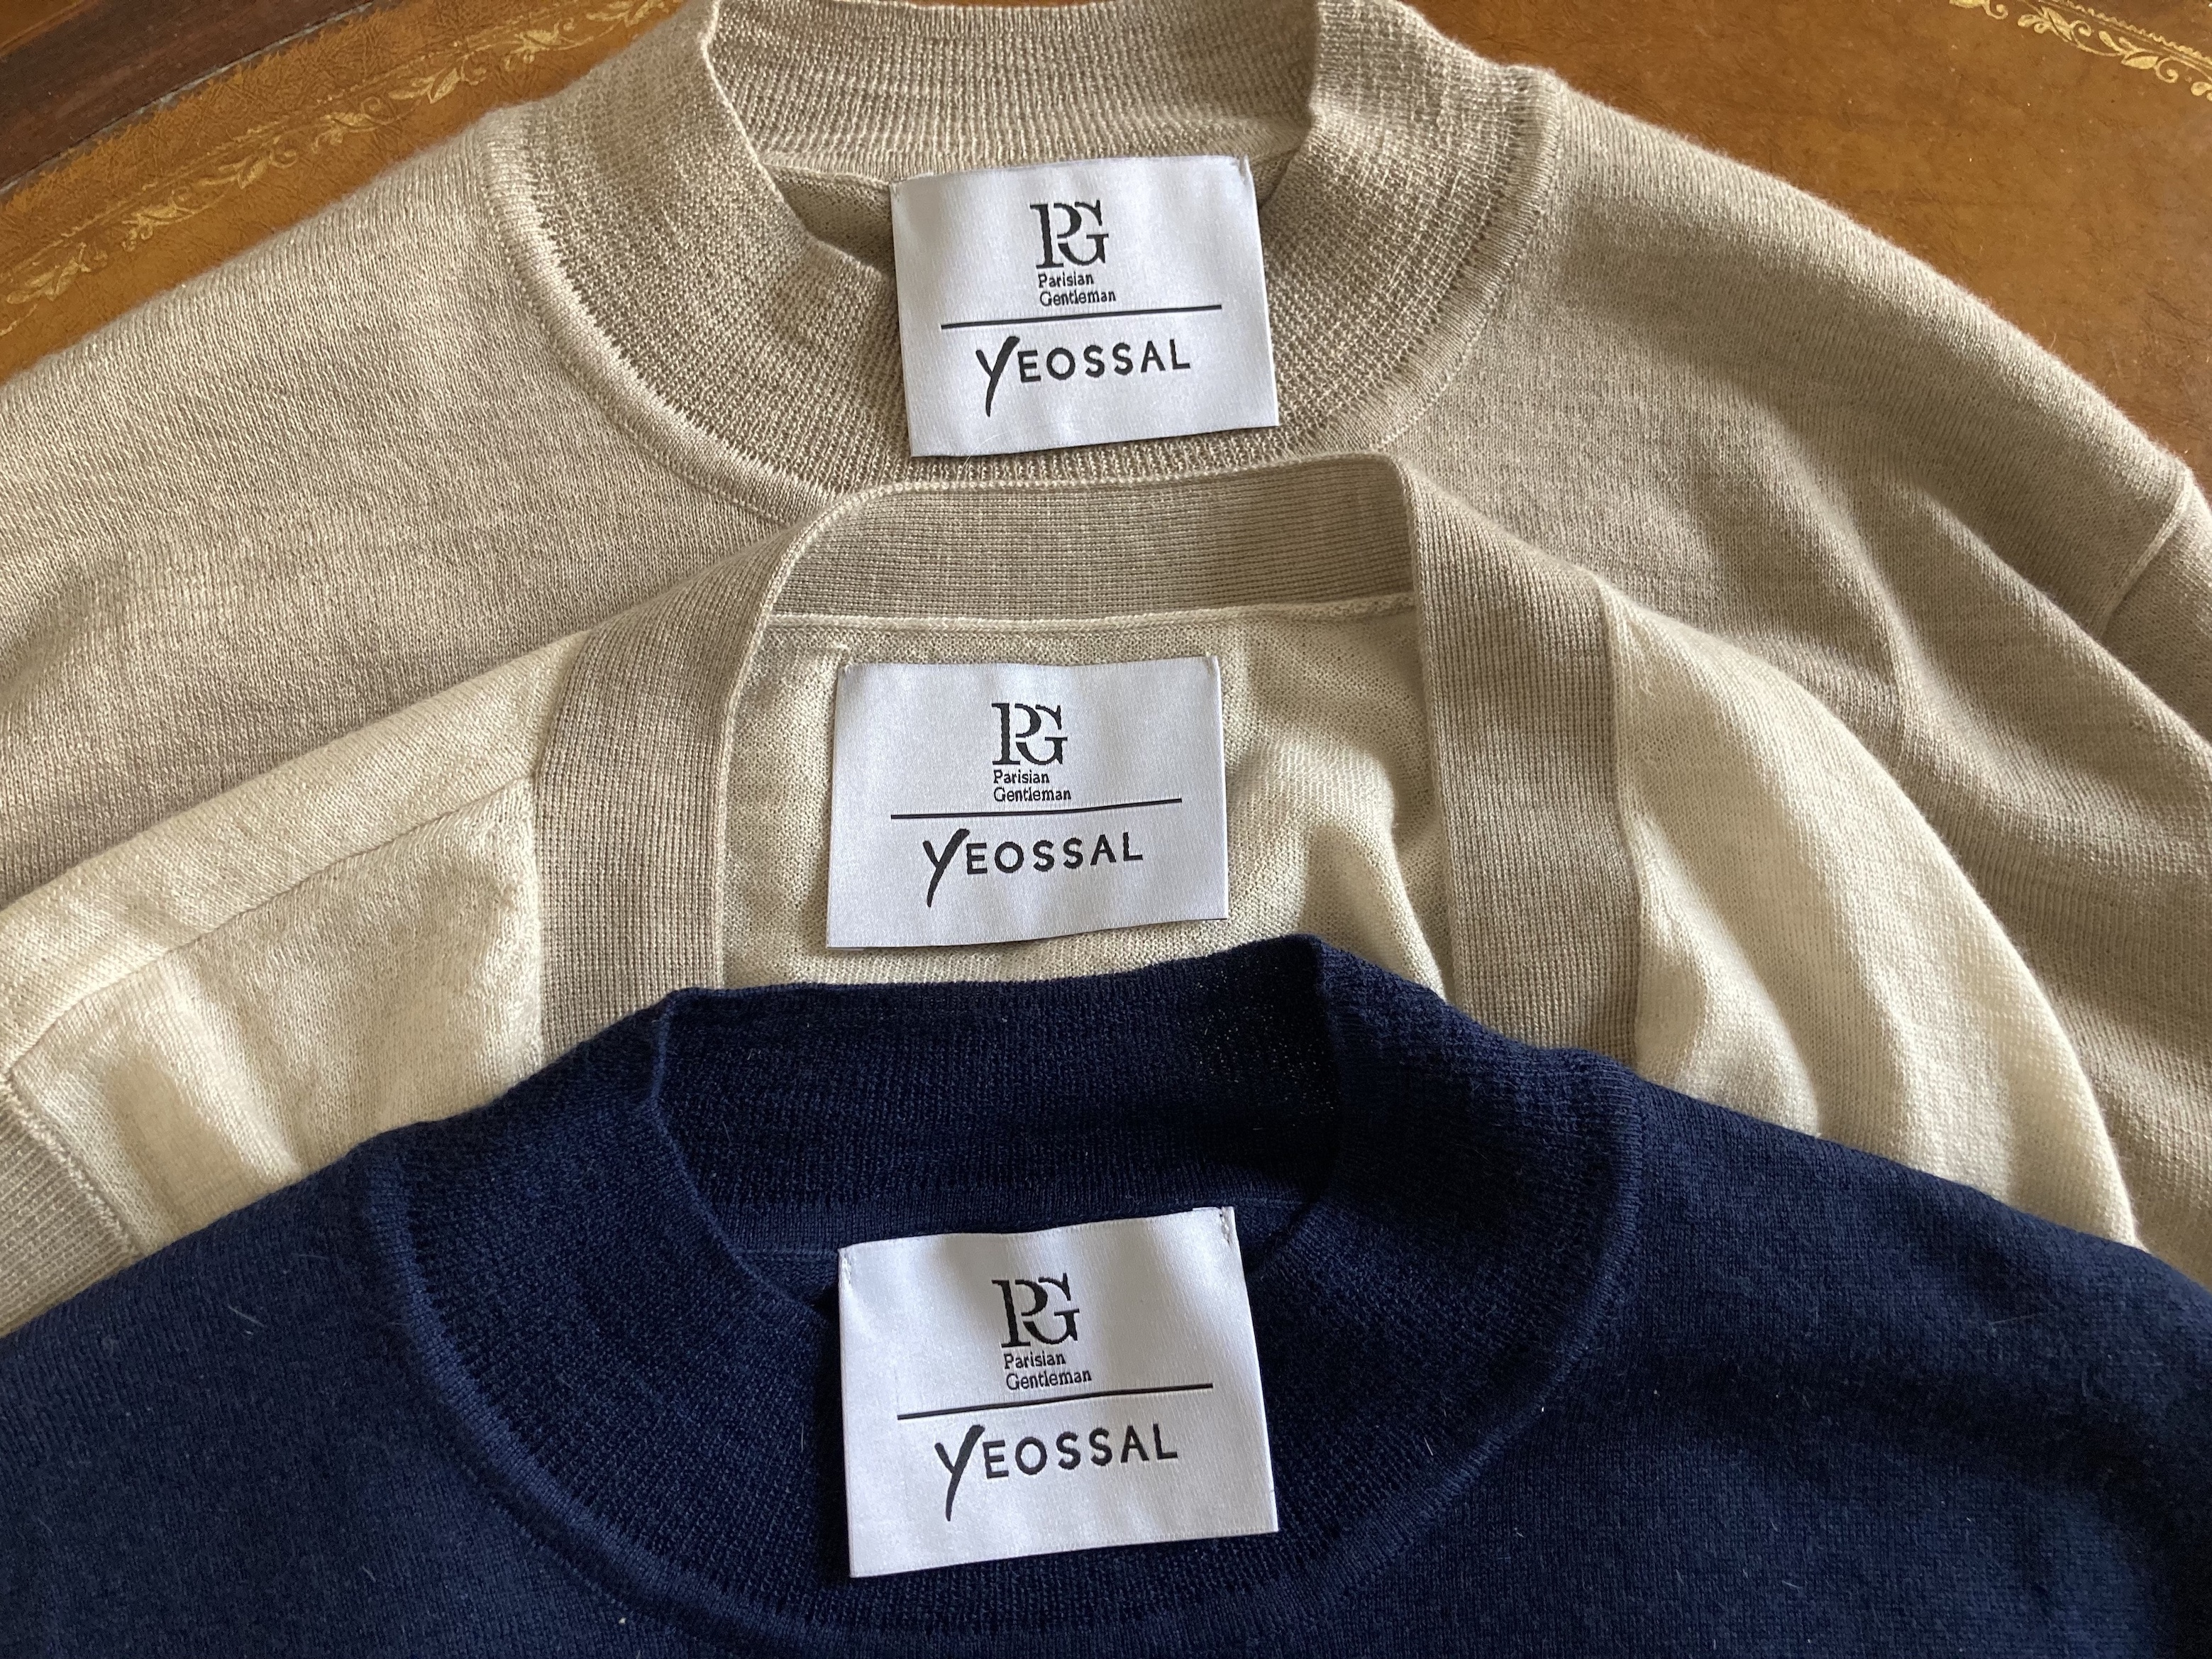 Collaboration PG X Yeossal: 100% cashmere sweaters and cardigan